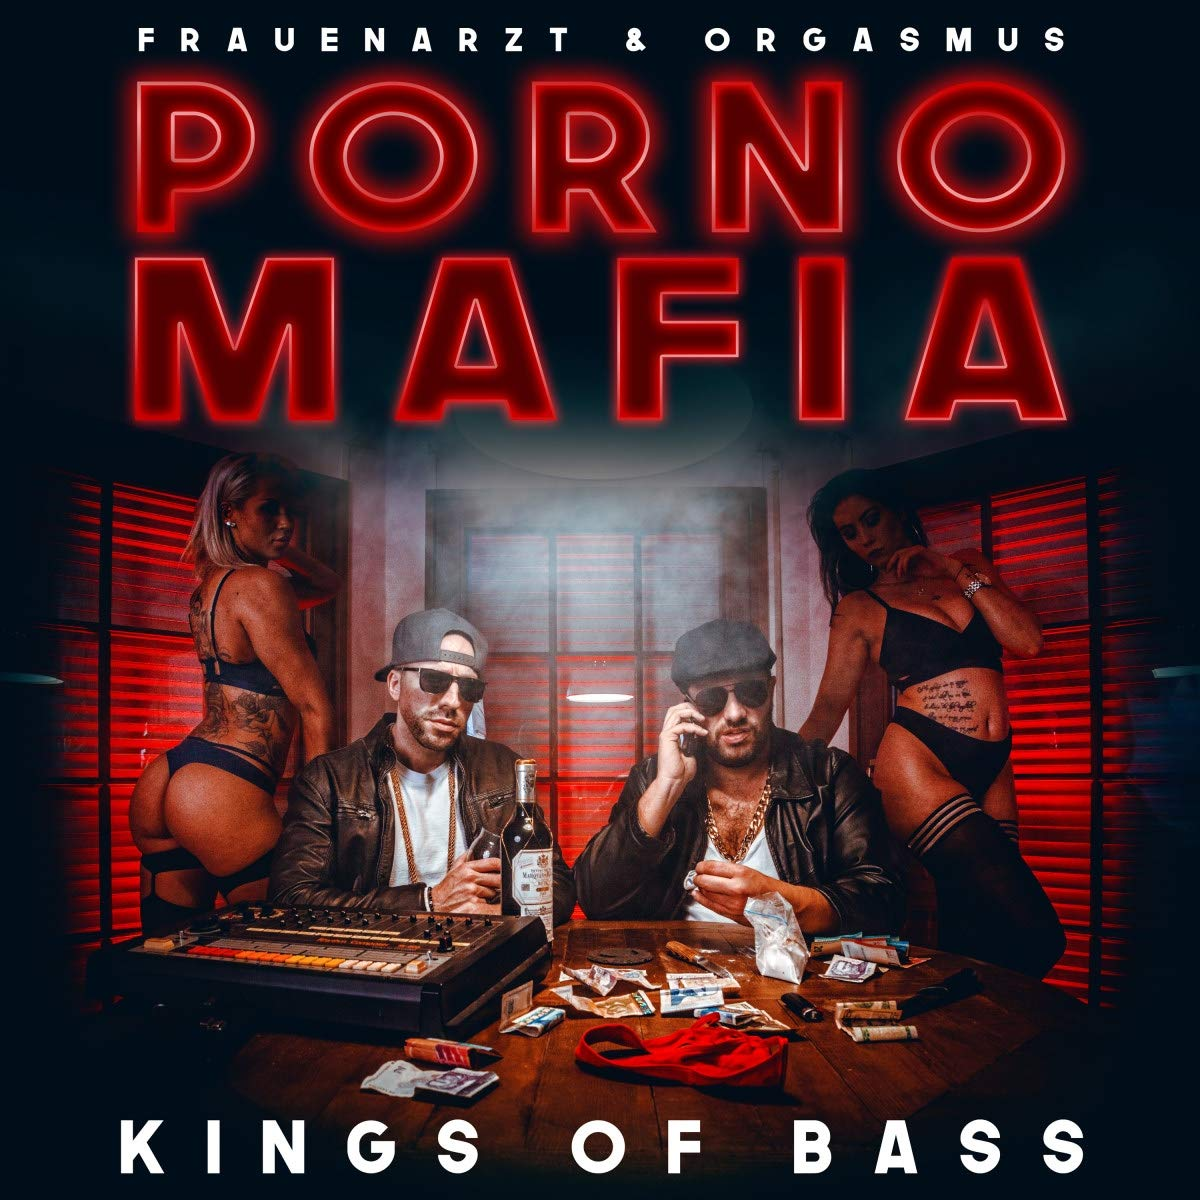 Porno Mafia (Frauenarzt & King Orgasmus One) - Kings of Bass (30.08.19)